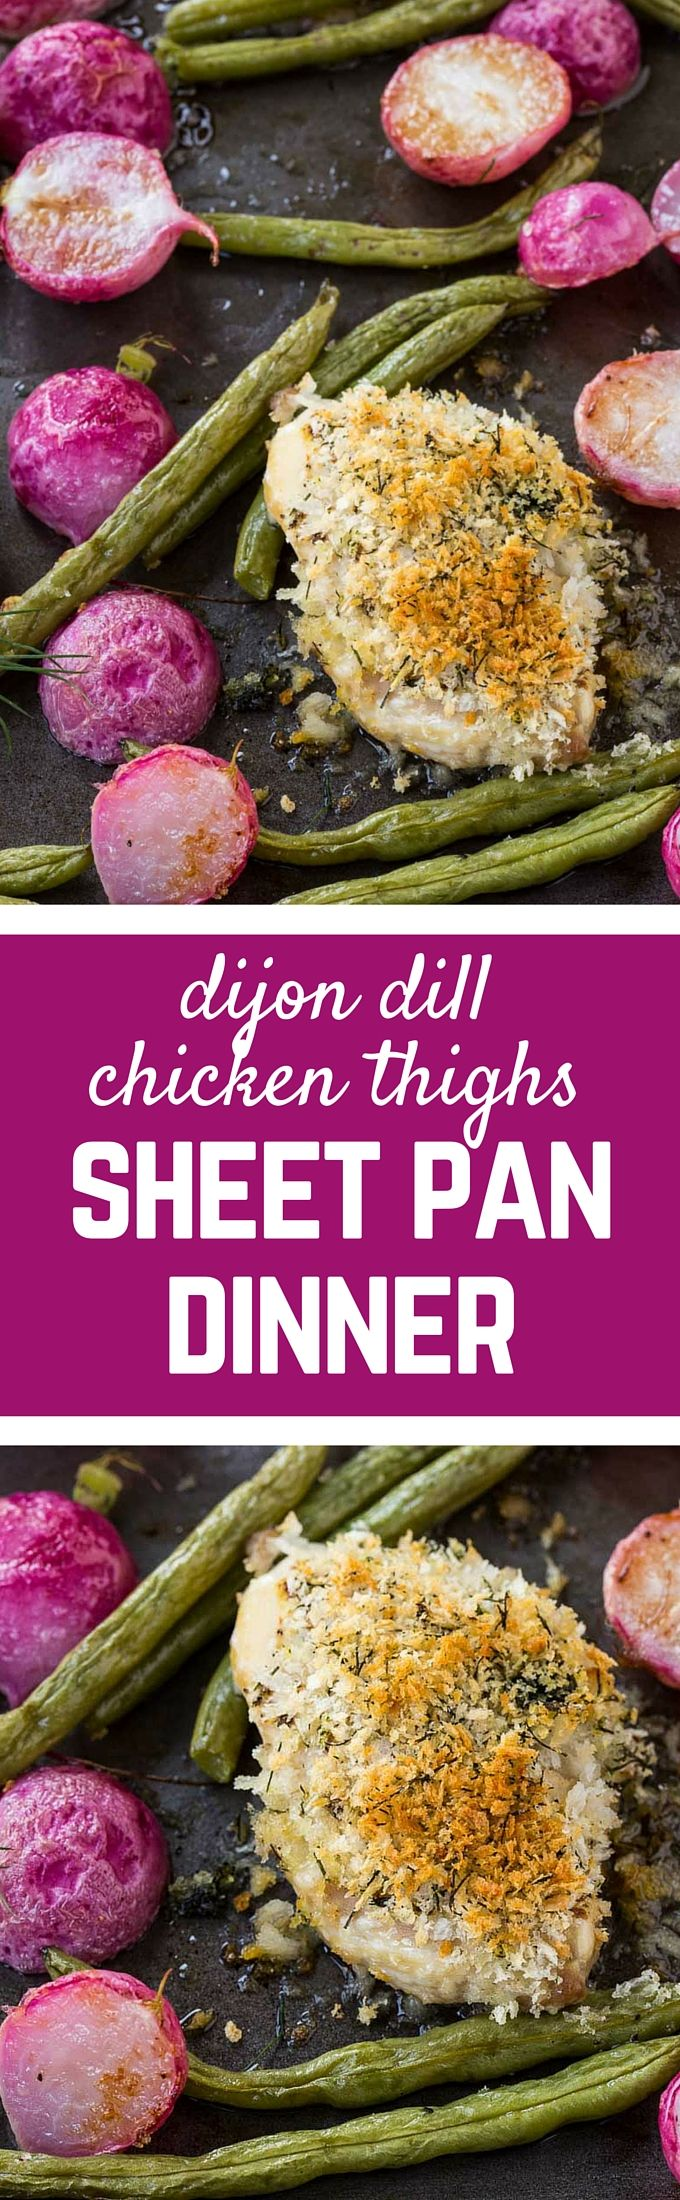 Crispy chicken thighs baked with dijon and dill are great on their own, but with the addition of roasted green beans and radishes, you have a perfect springtime sheet pan dinner. Get the easy recipe on RachelCooks.com! #sponsored @justbarechicken